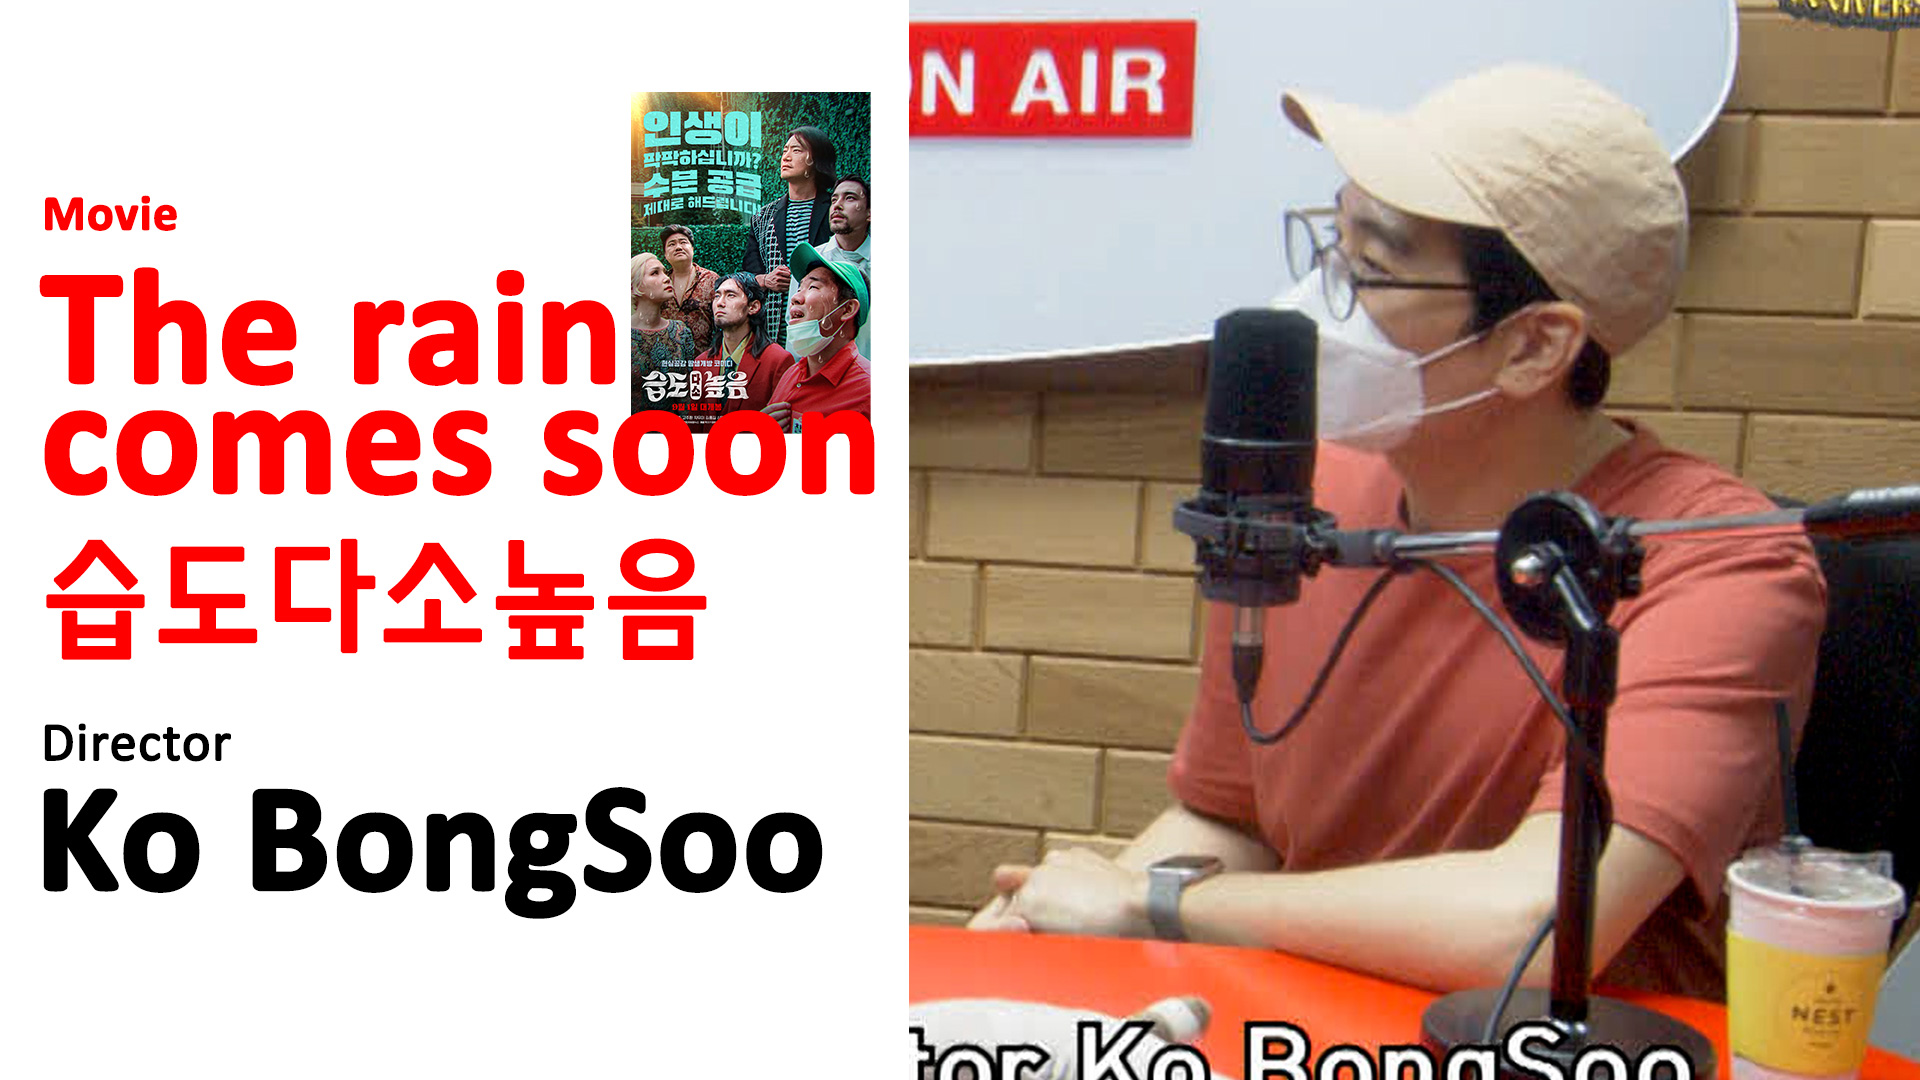 Special Interview with Ko BongSoo, director of 'The rain comes soon'